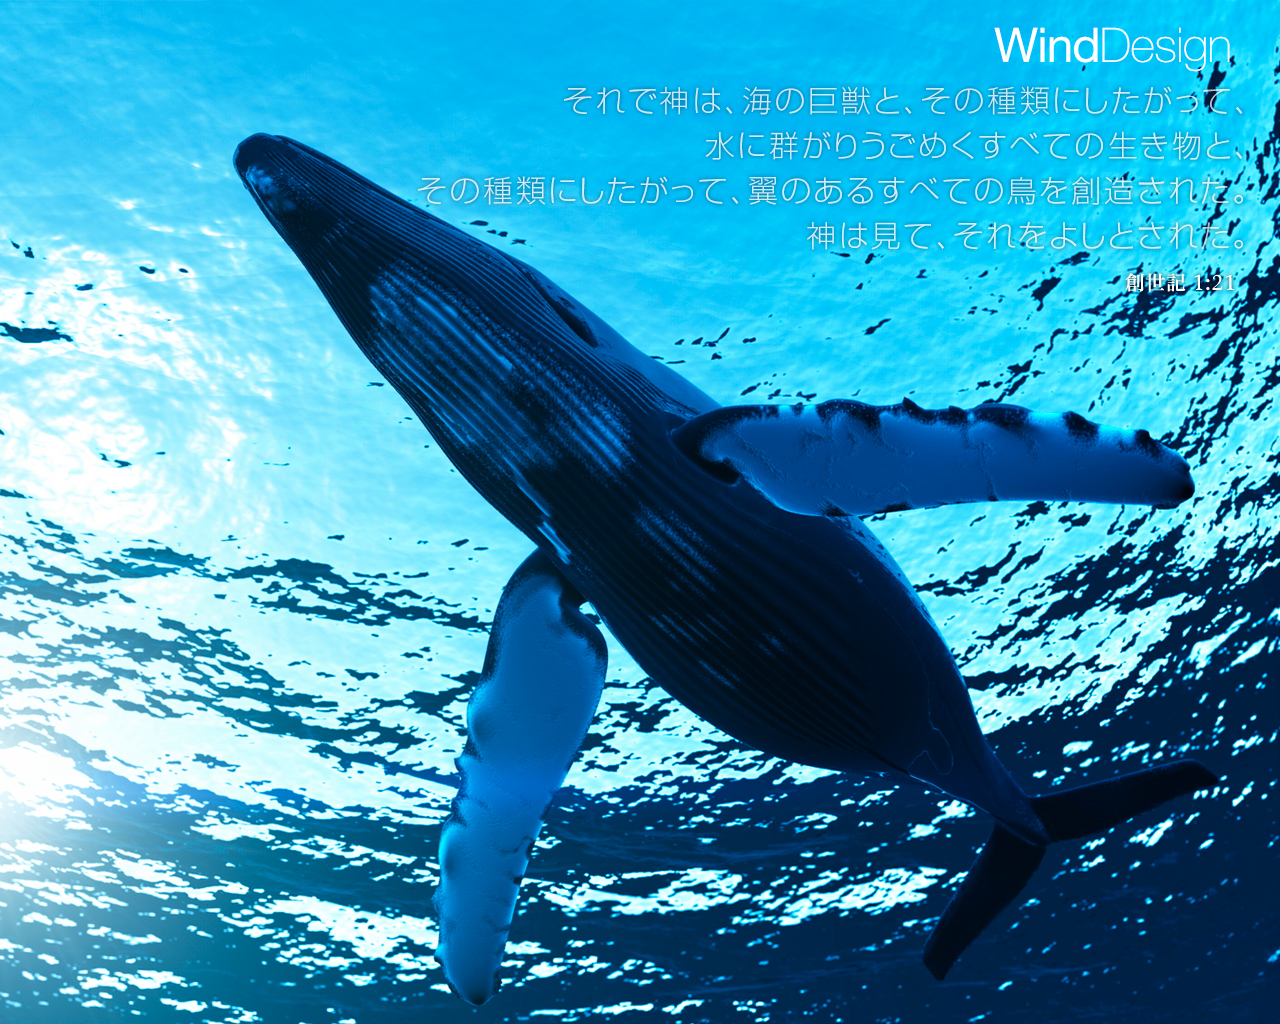 whale wallpaper   weddingdressincom 1280x1024